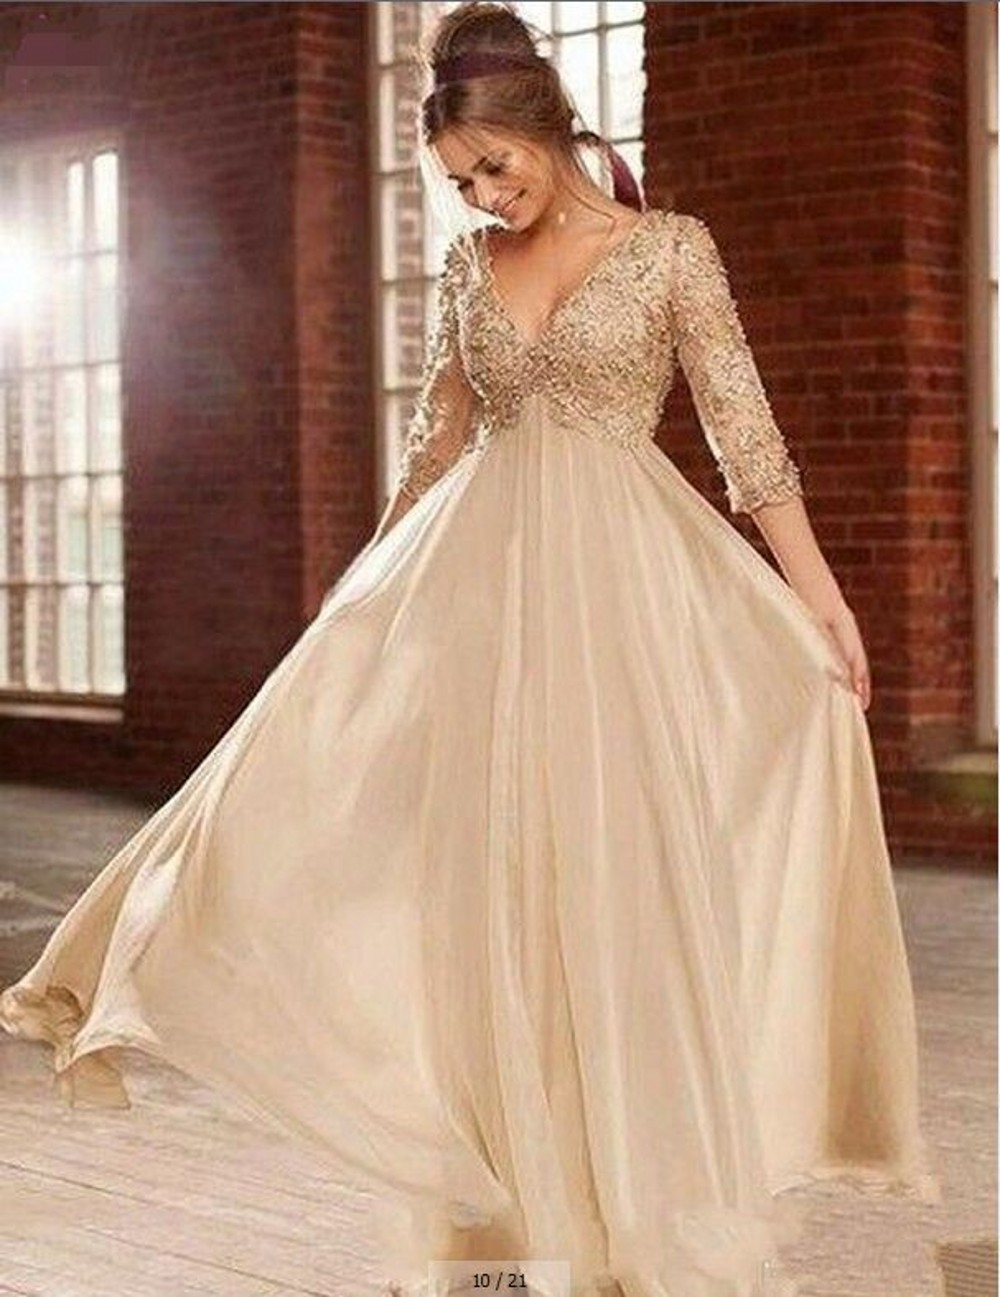 Champagne wedding dresses plus size great ideas for for Champagne color wedding dresses